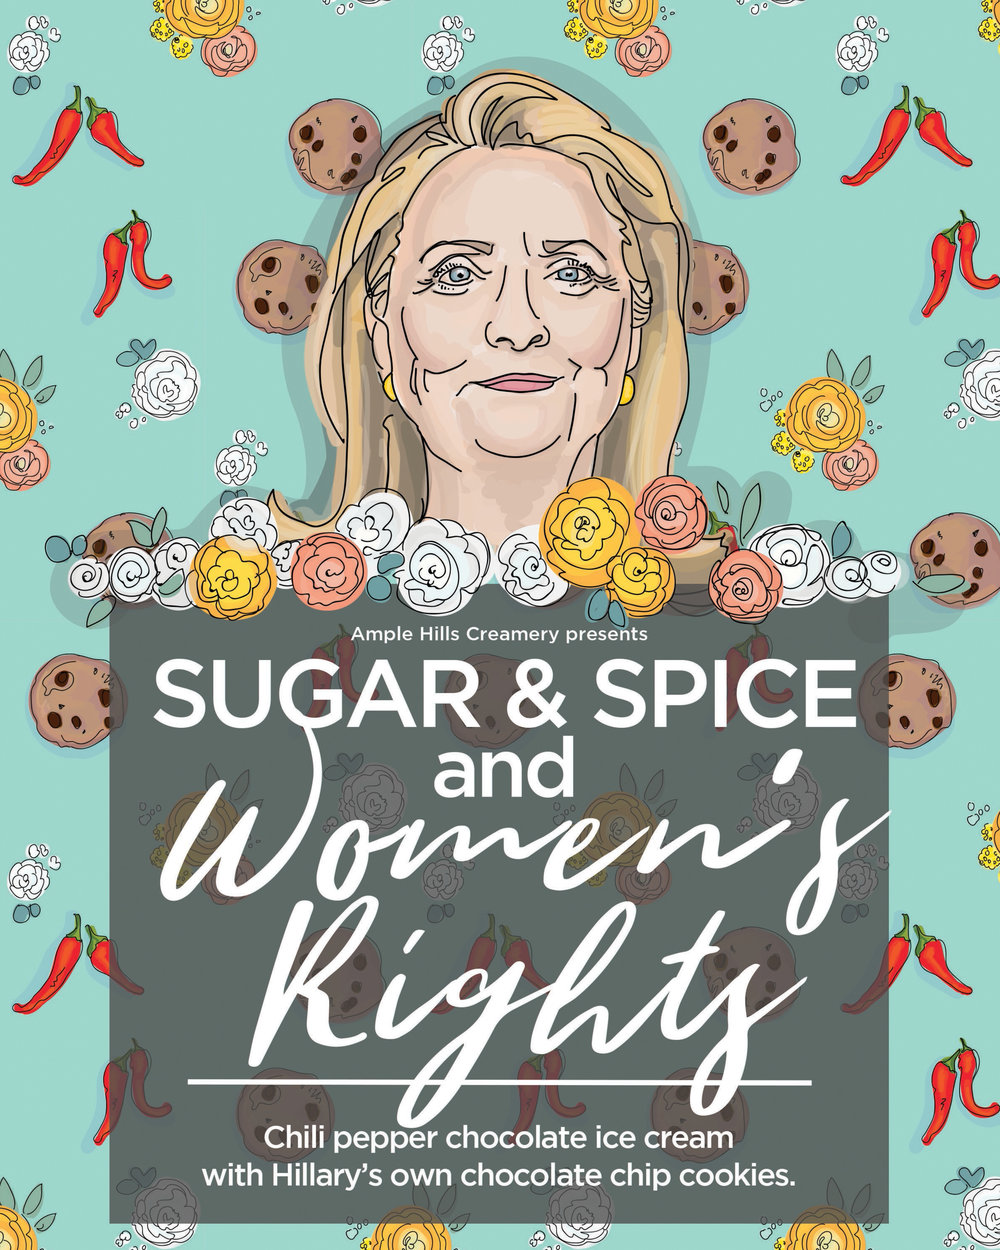 hilary sign RGB.jpg